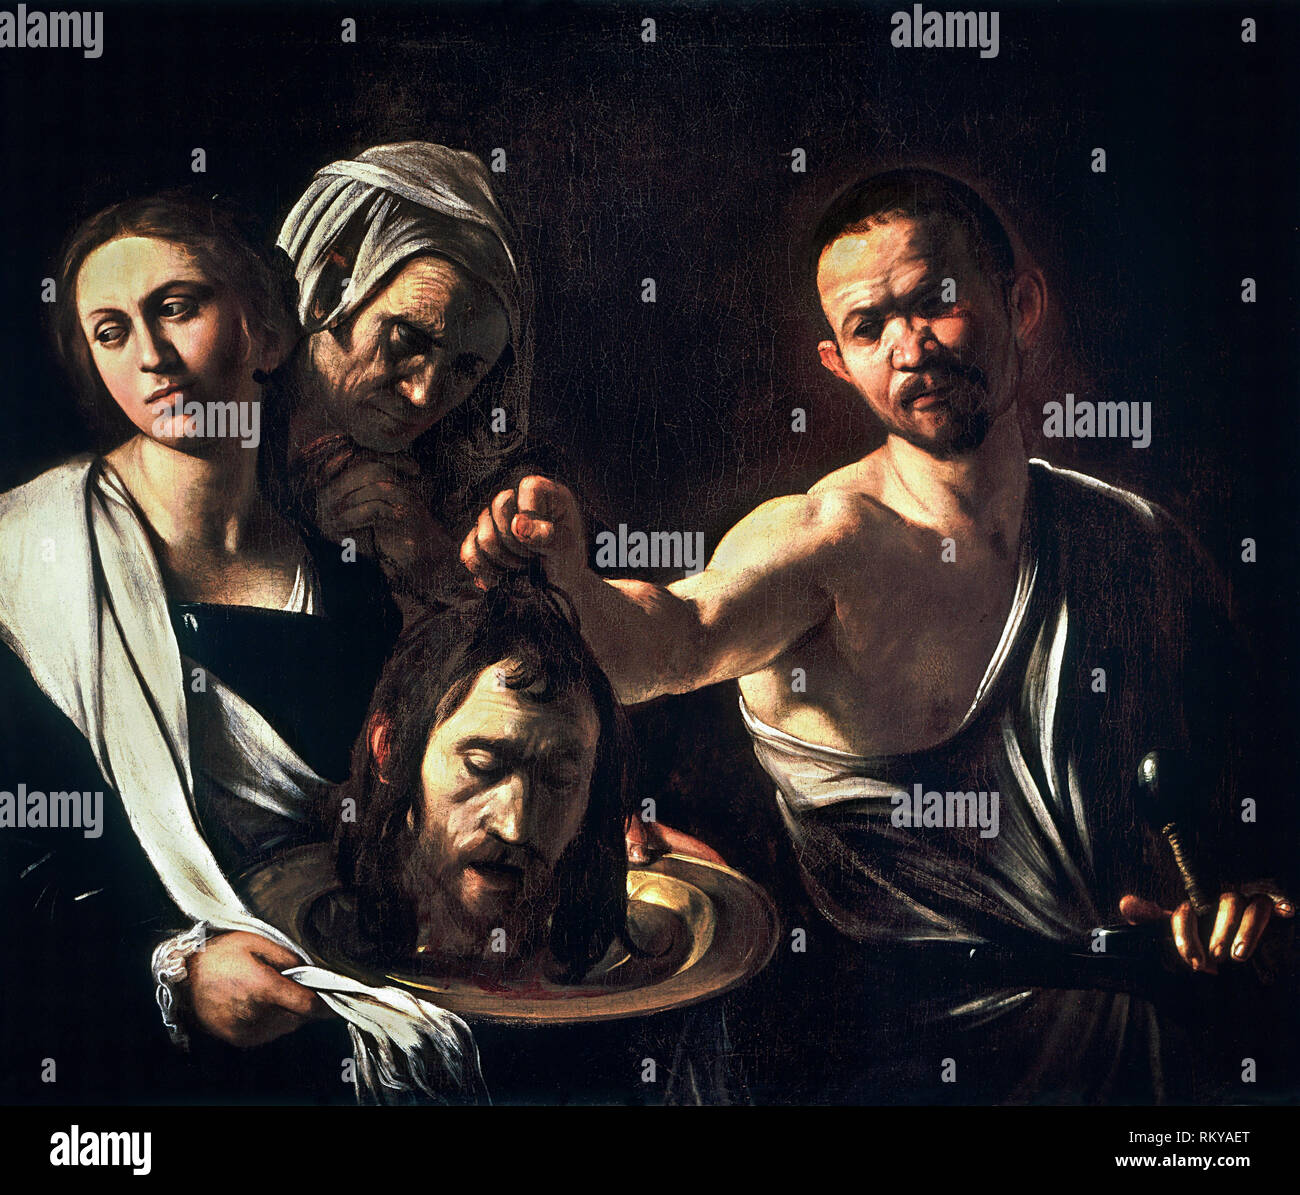 Salome with the Head of John the Baptist, Caravaggio, c.1610, painting - Stock Image